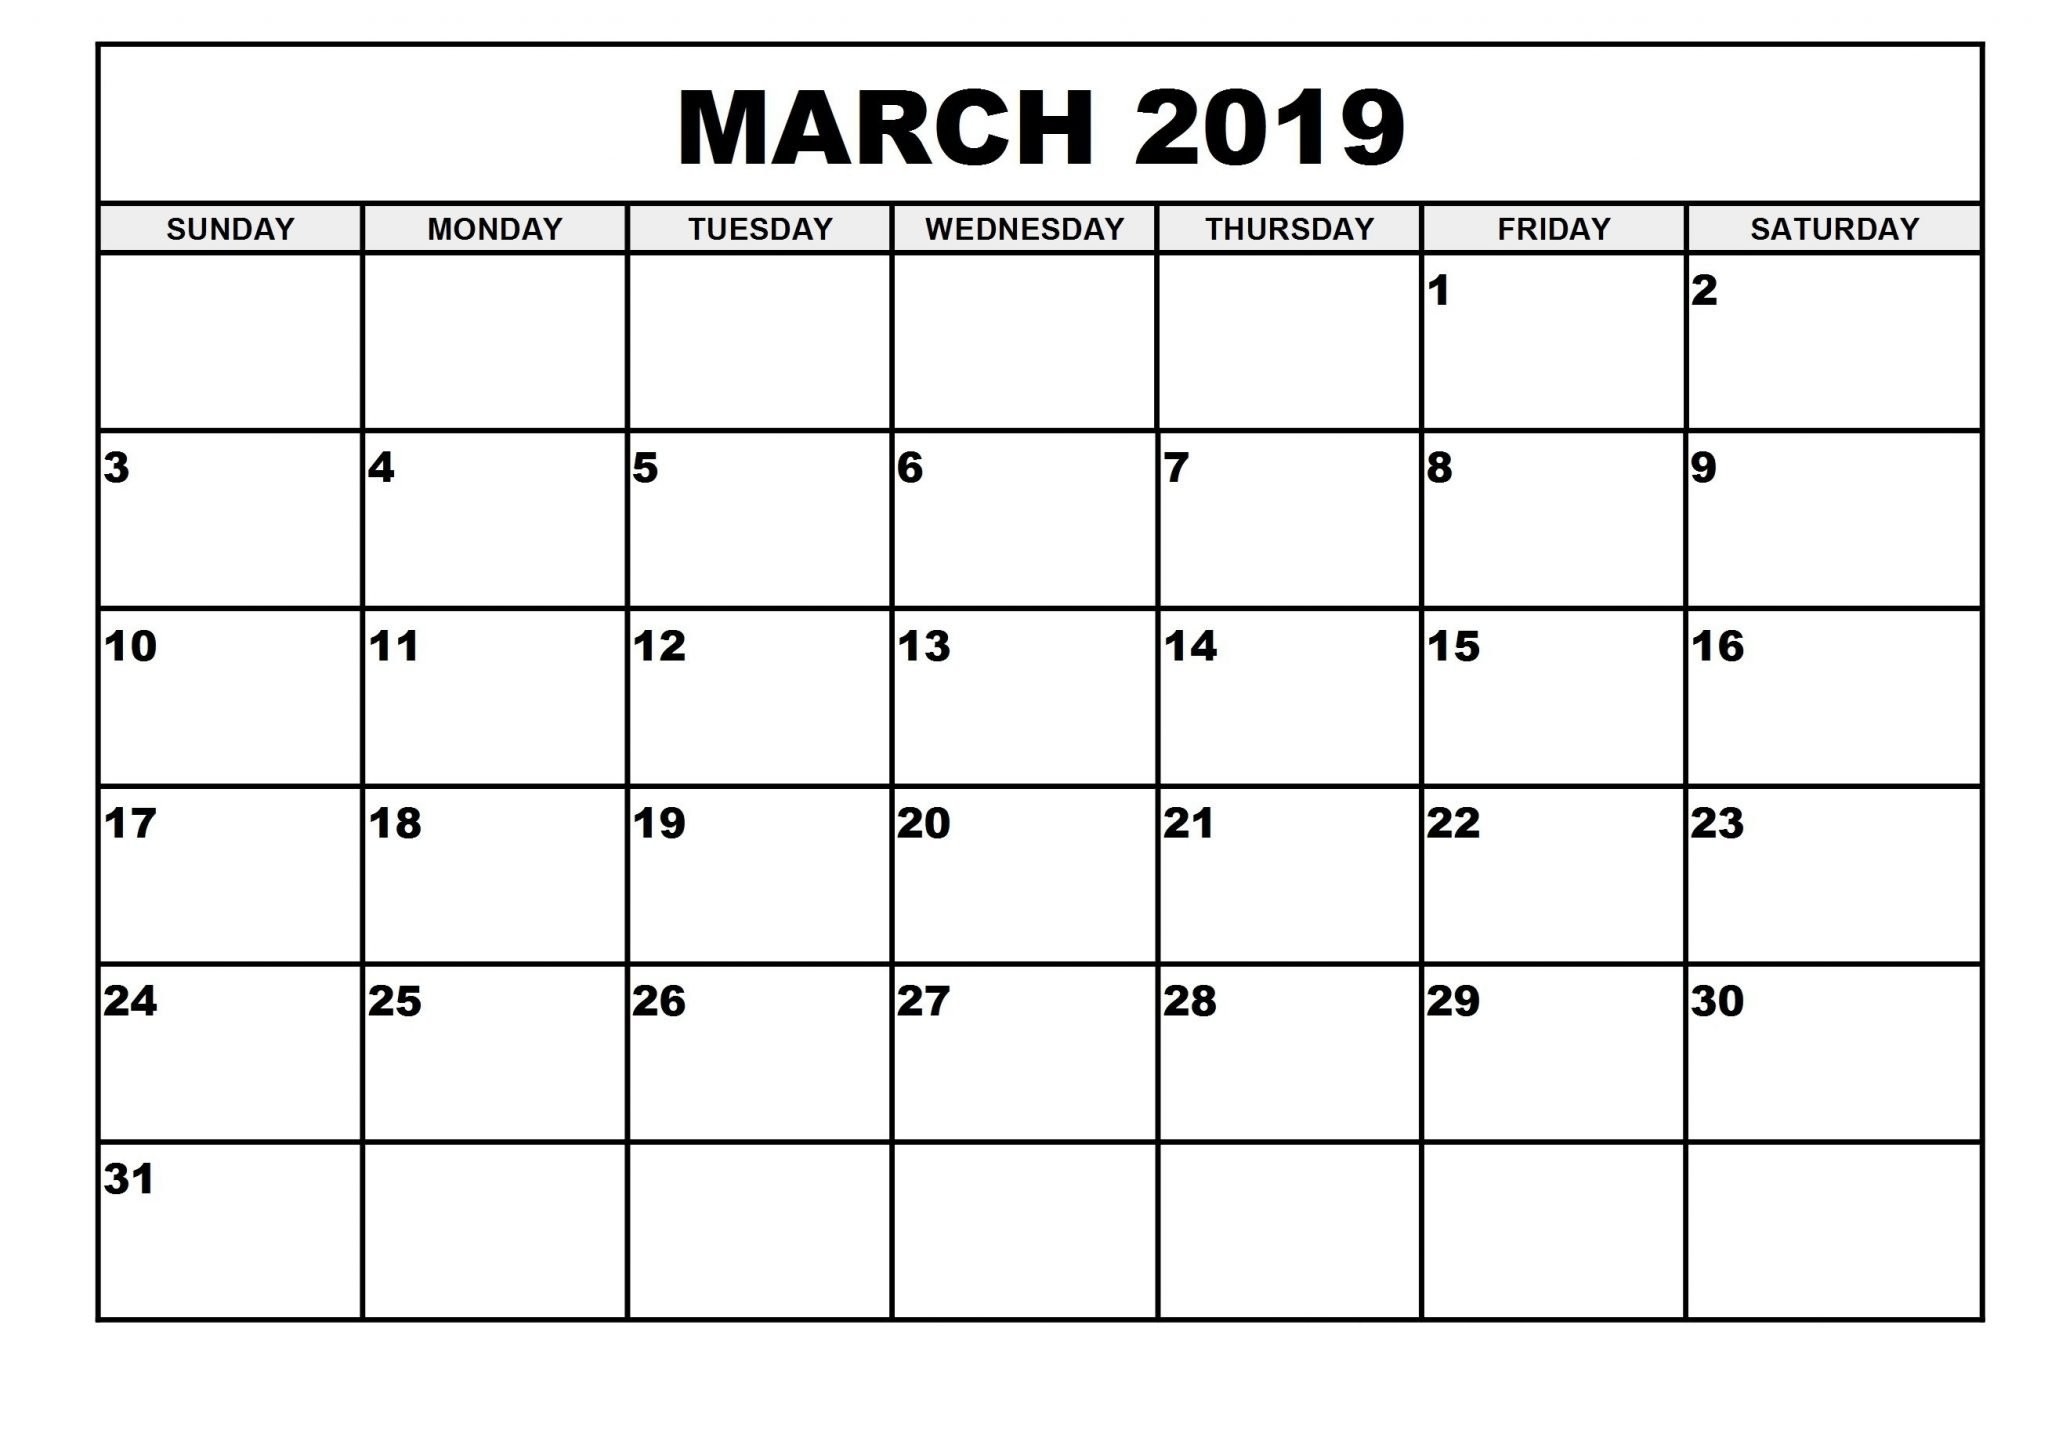 2019 Monthly Printable March 2019 Calendar – Printable Calendar 2019 March 1 2019 Calendar